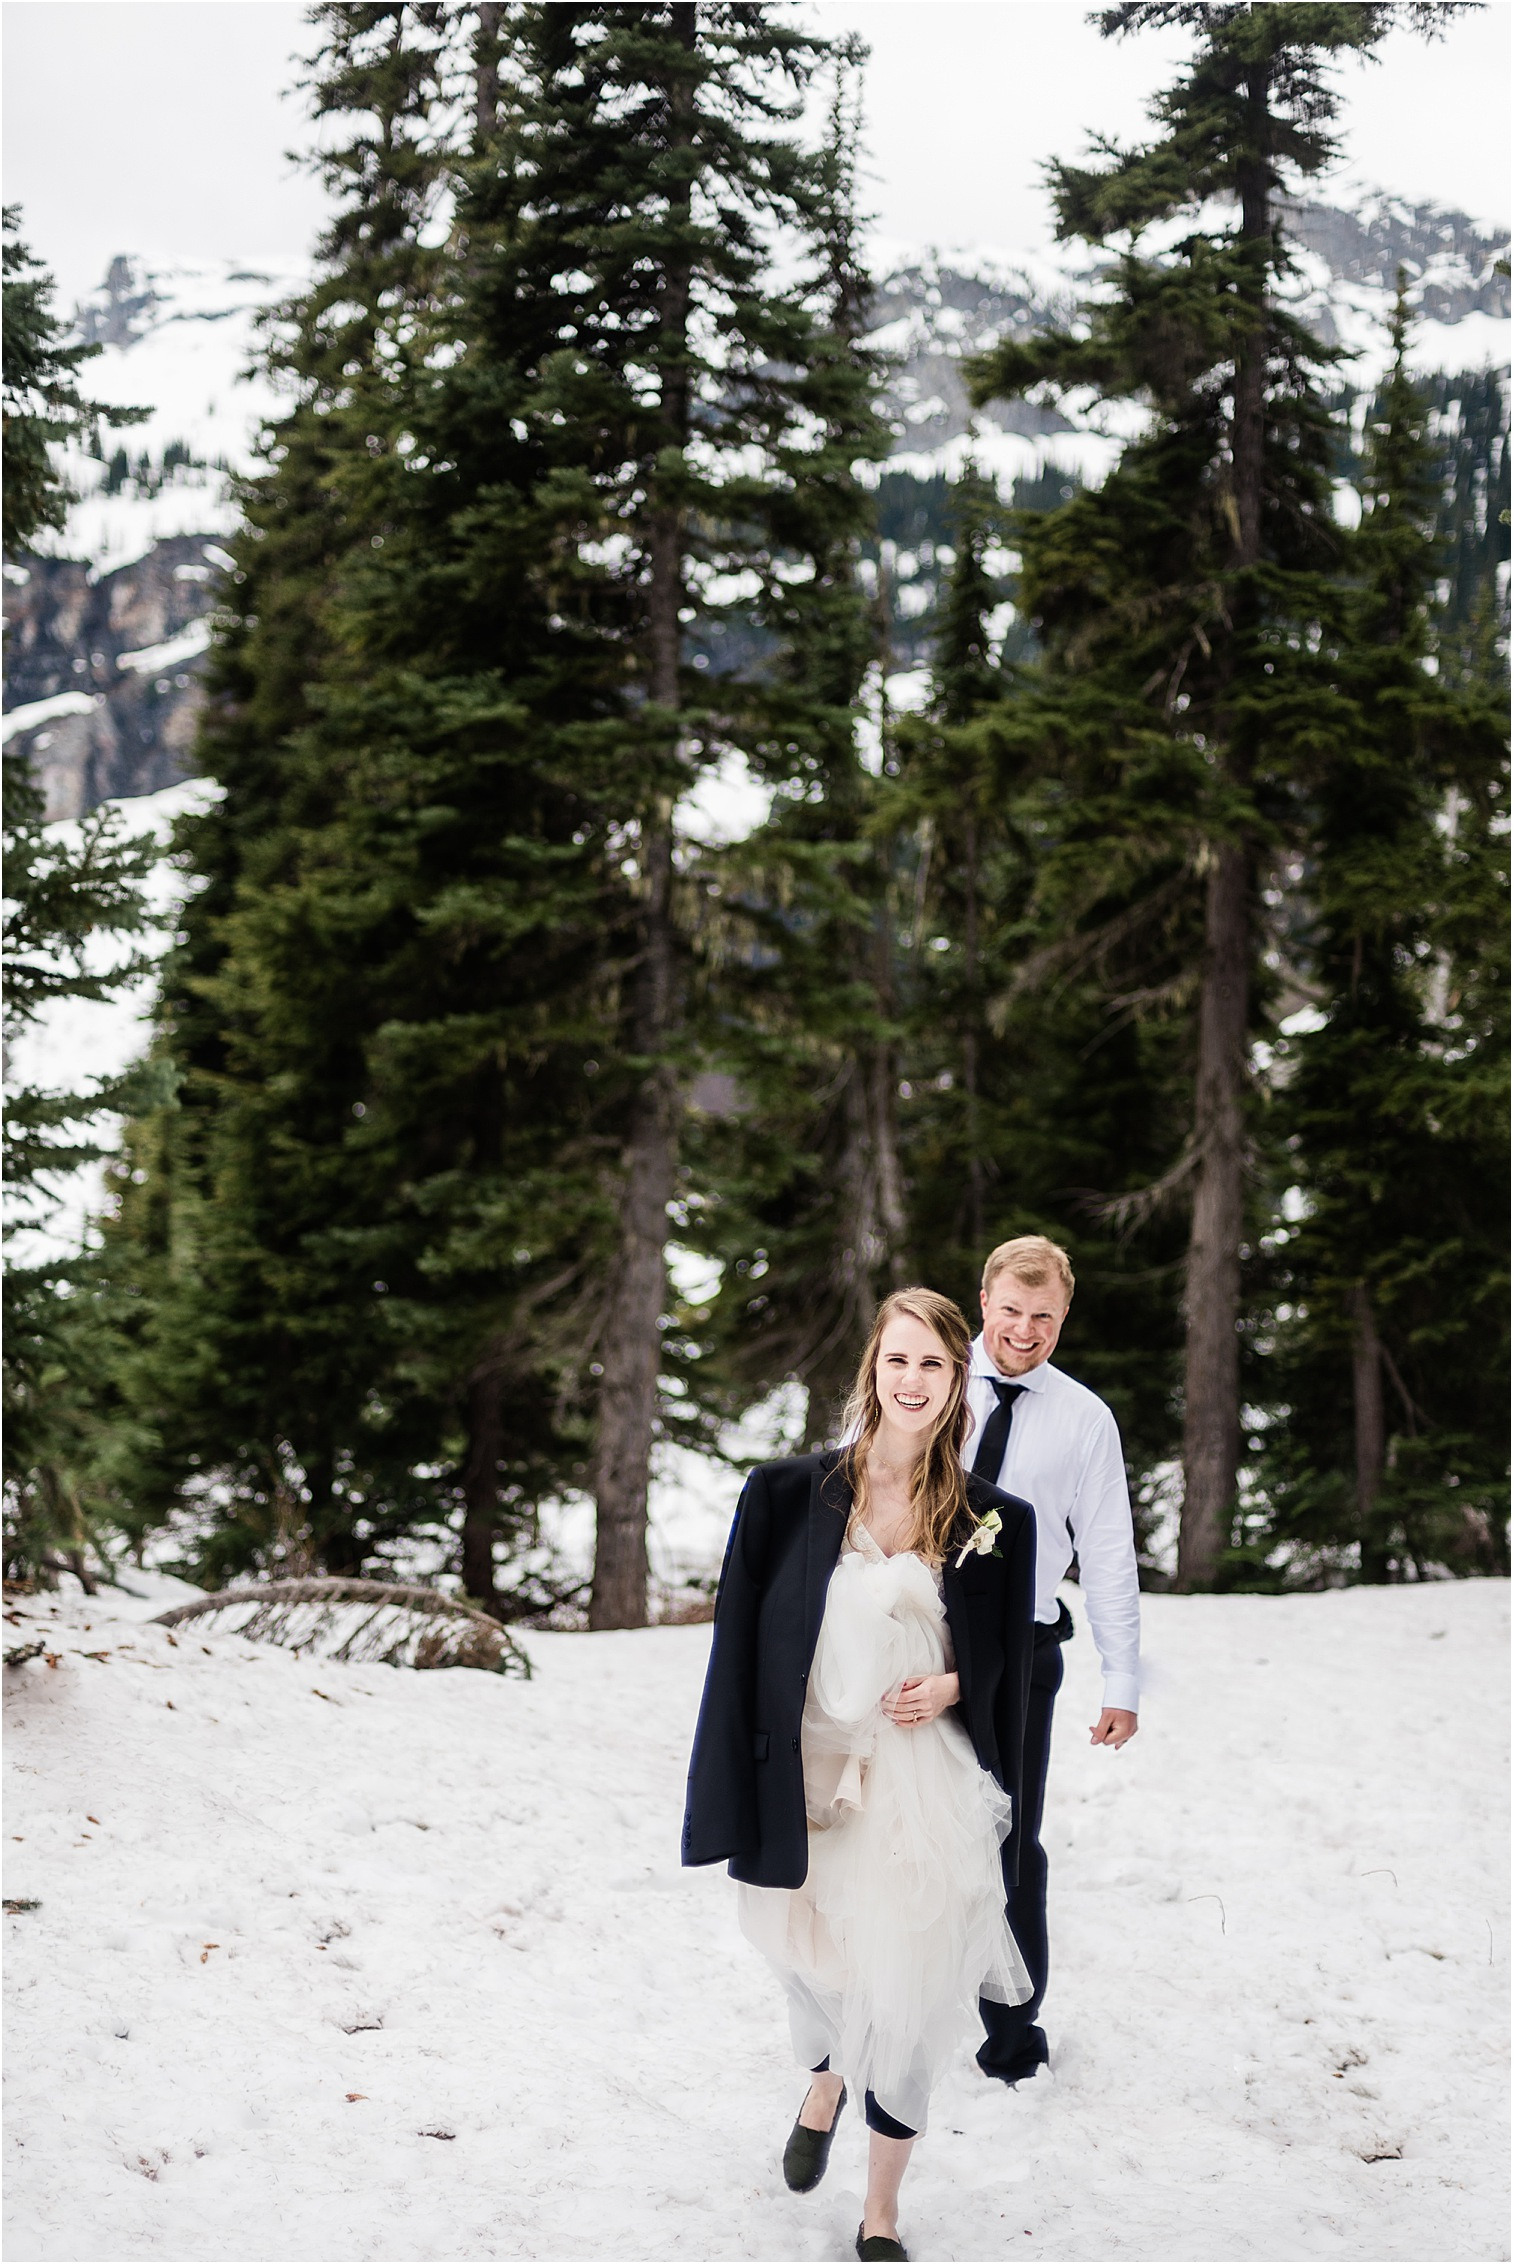 Hope & Steven hiking in their wedding clothes during their Adventure Wedding in the North Cascades. Image by Forthright Photo, Seattle Wedding & Elopement Photographers